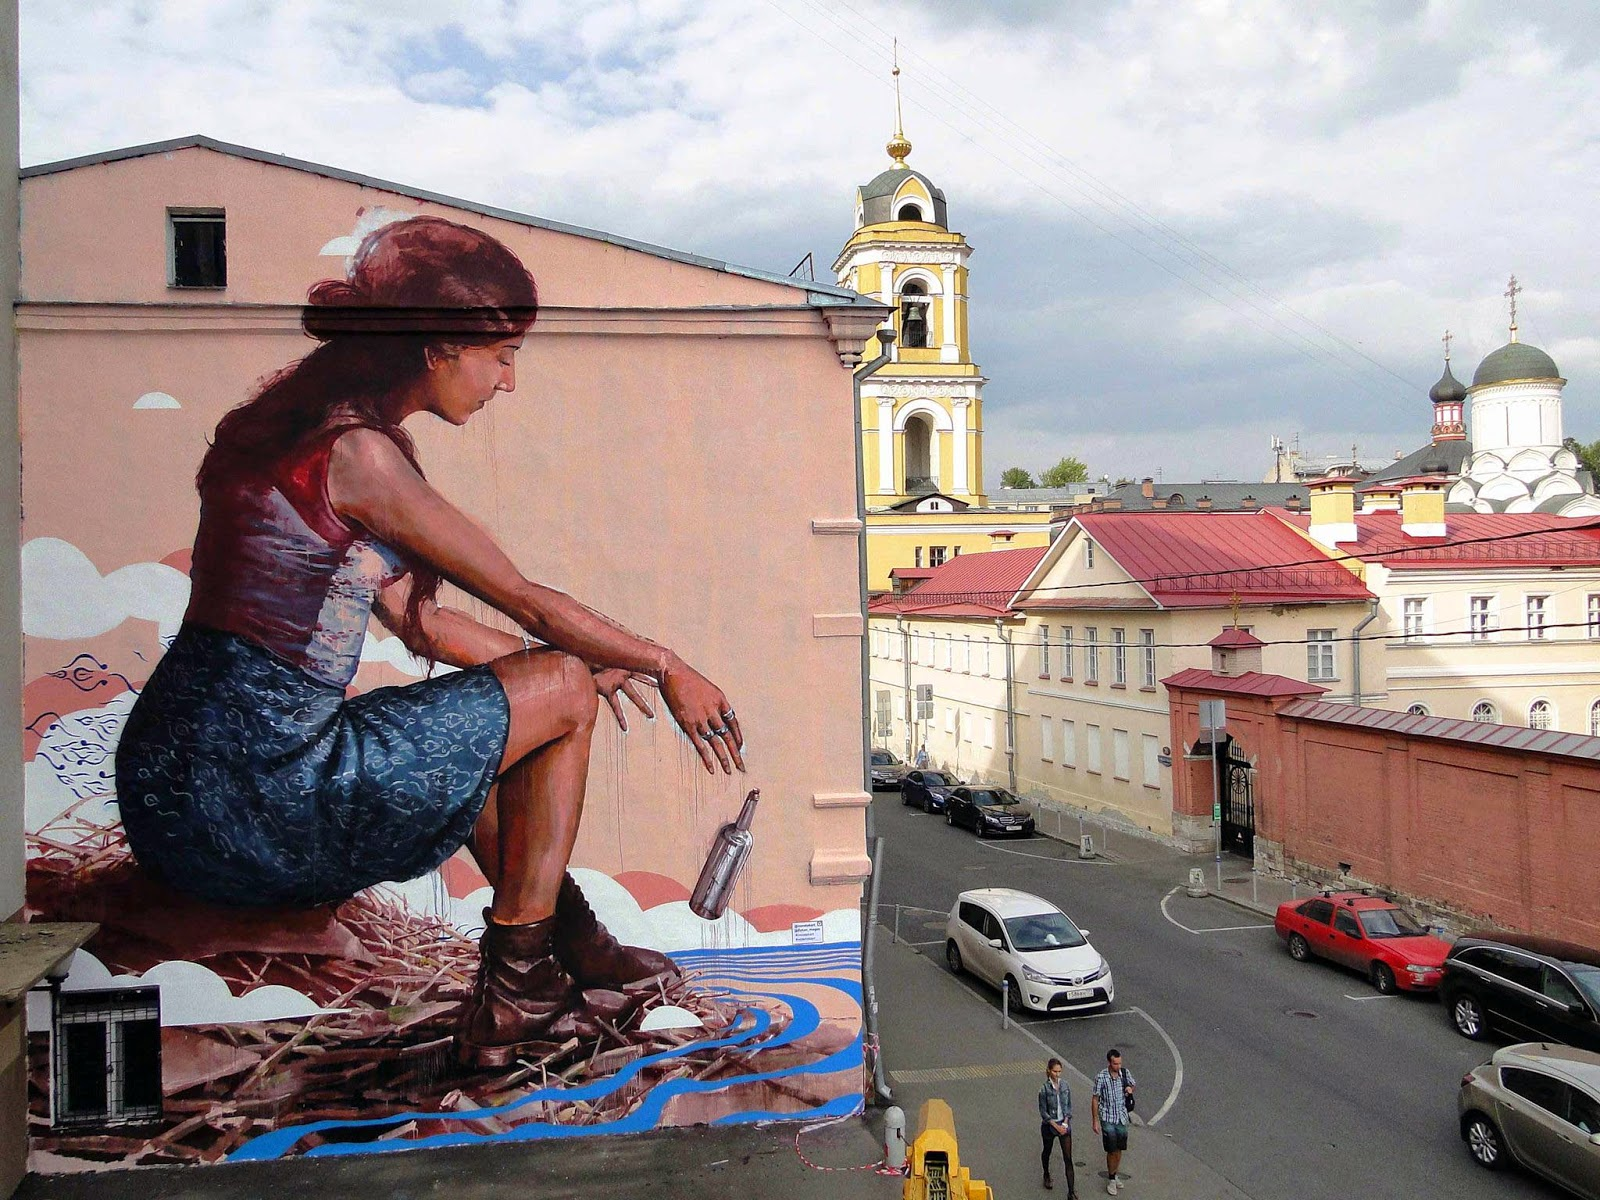 Last seen in Aalborg, Denmark, Fintan Magee has now landed in good old Russia where he painted a new piece on the streets of Moscow.